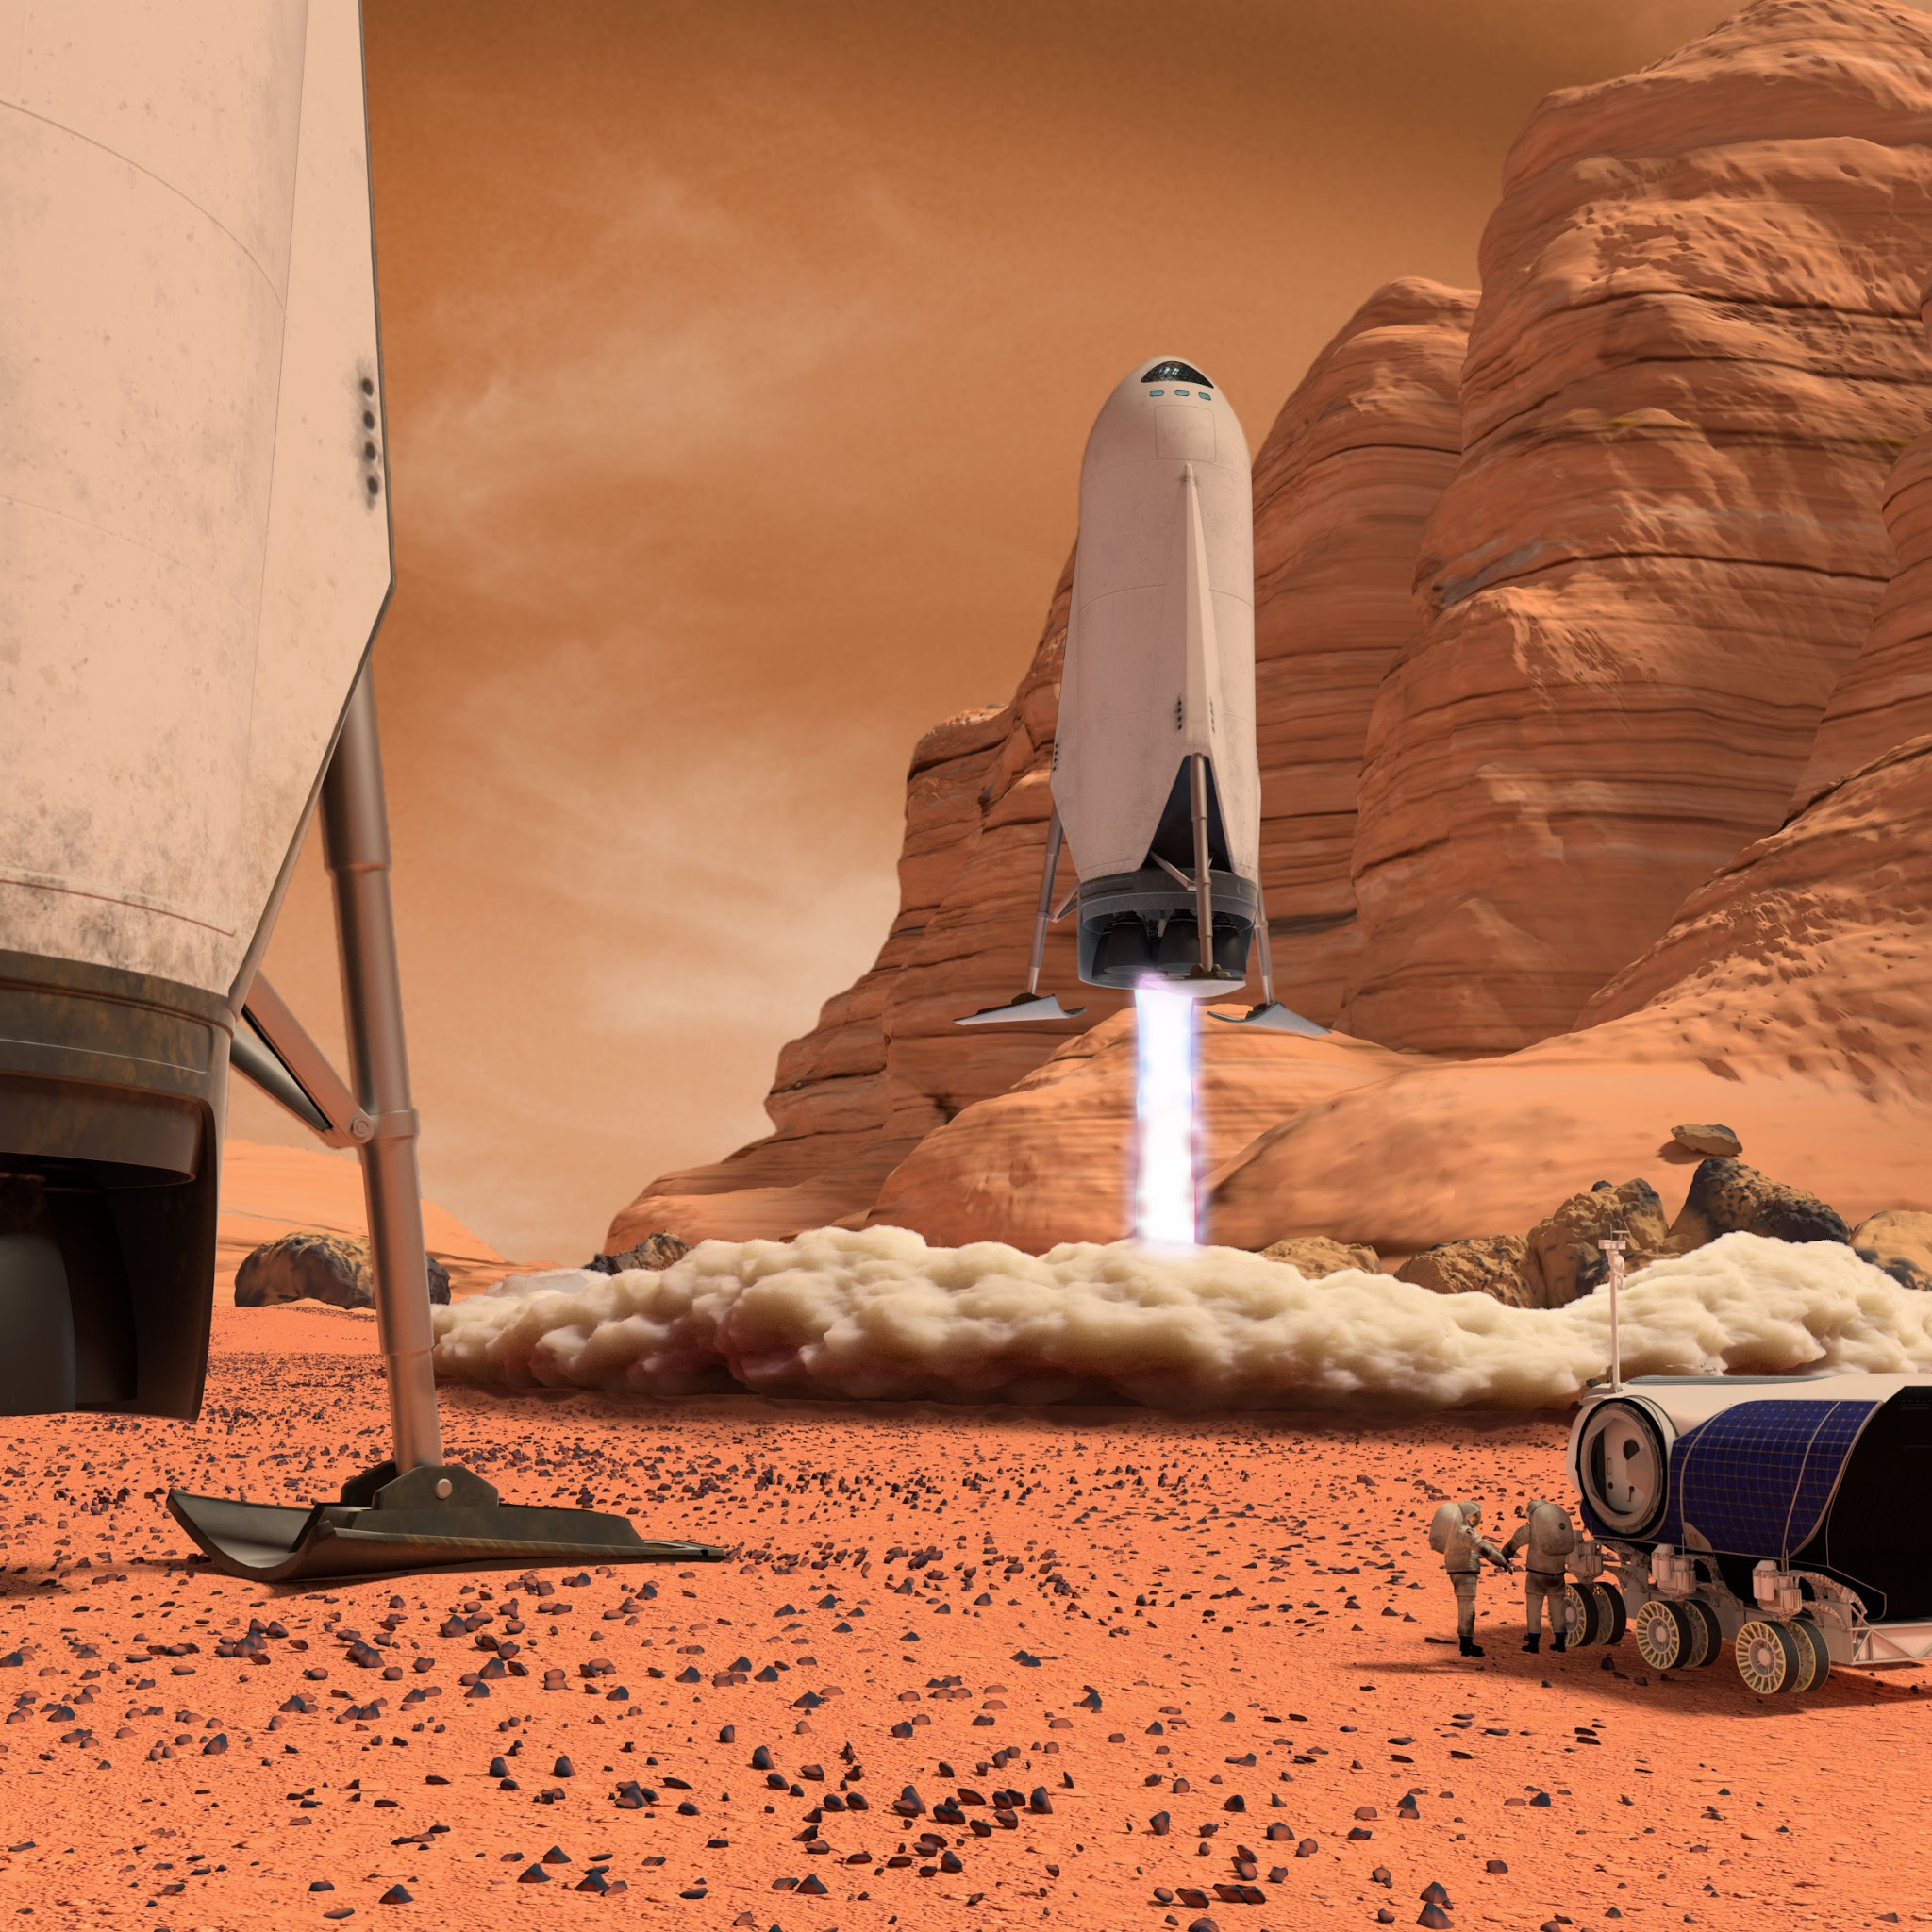 human Mars: SpaceX downscaled ITS spaceship landing on Mars